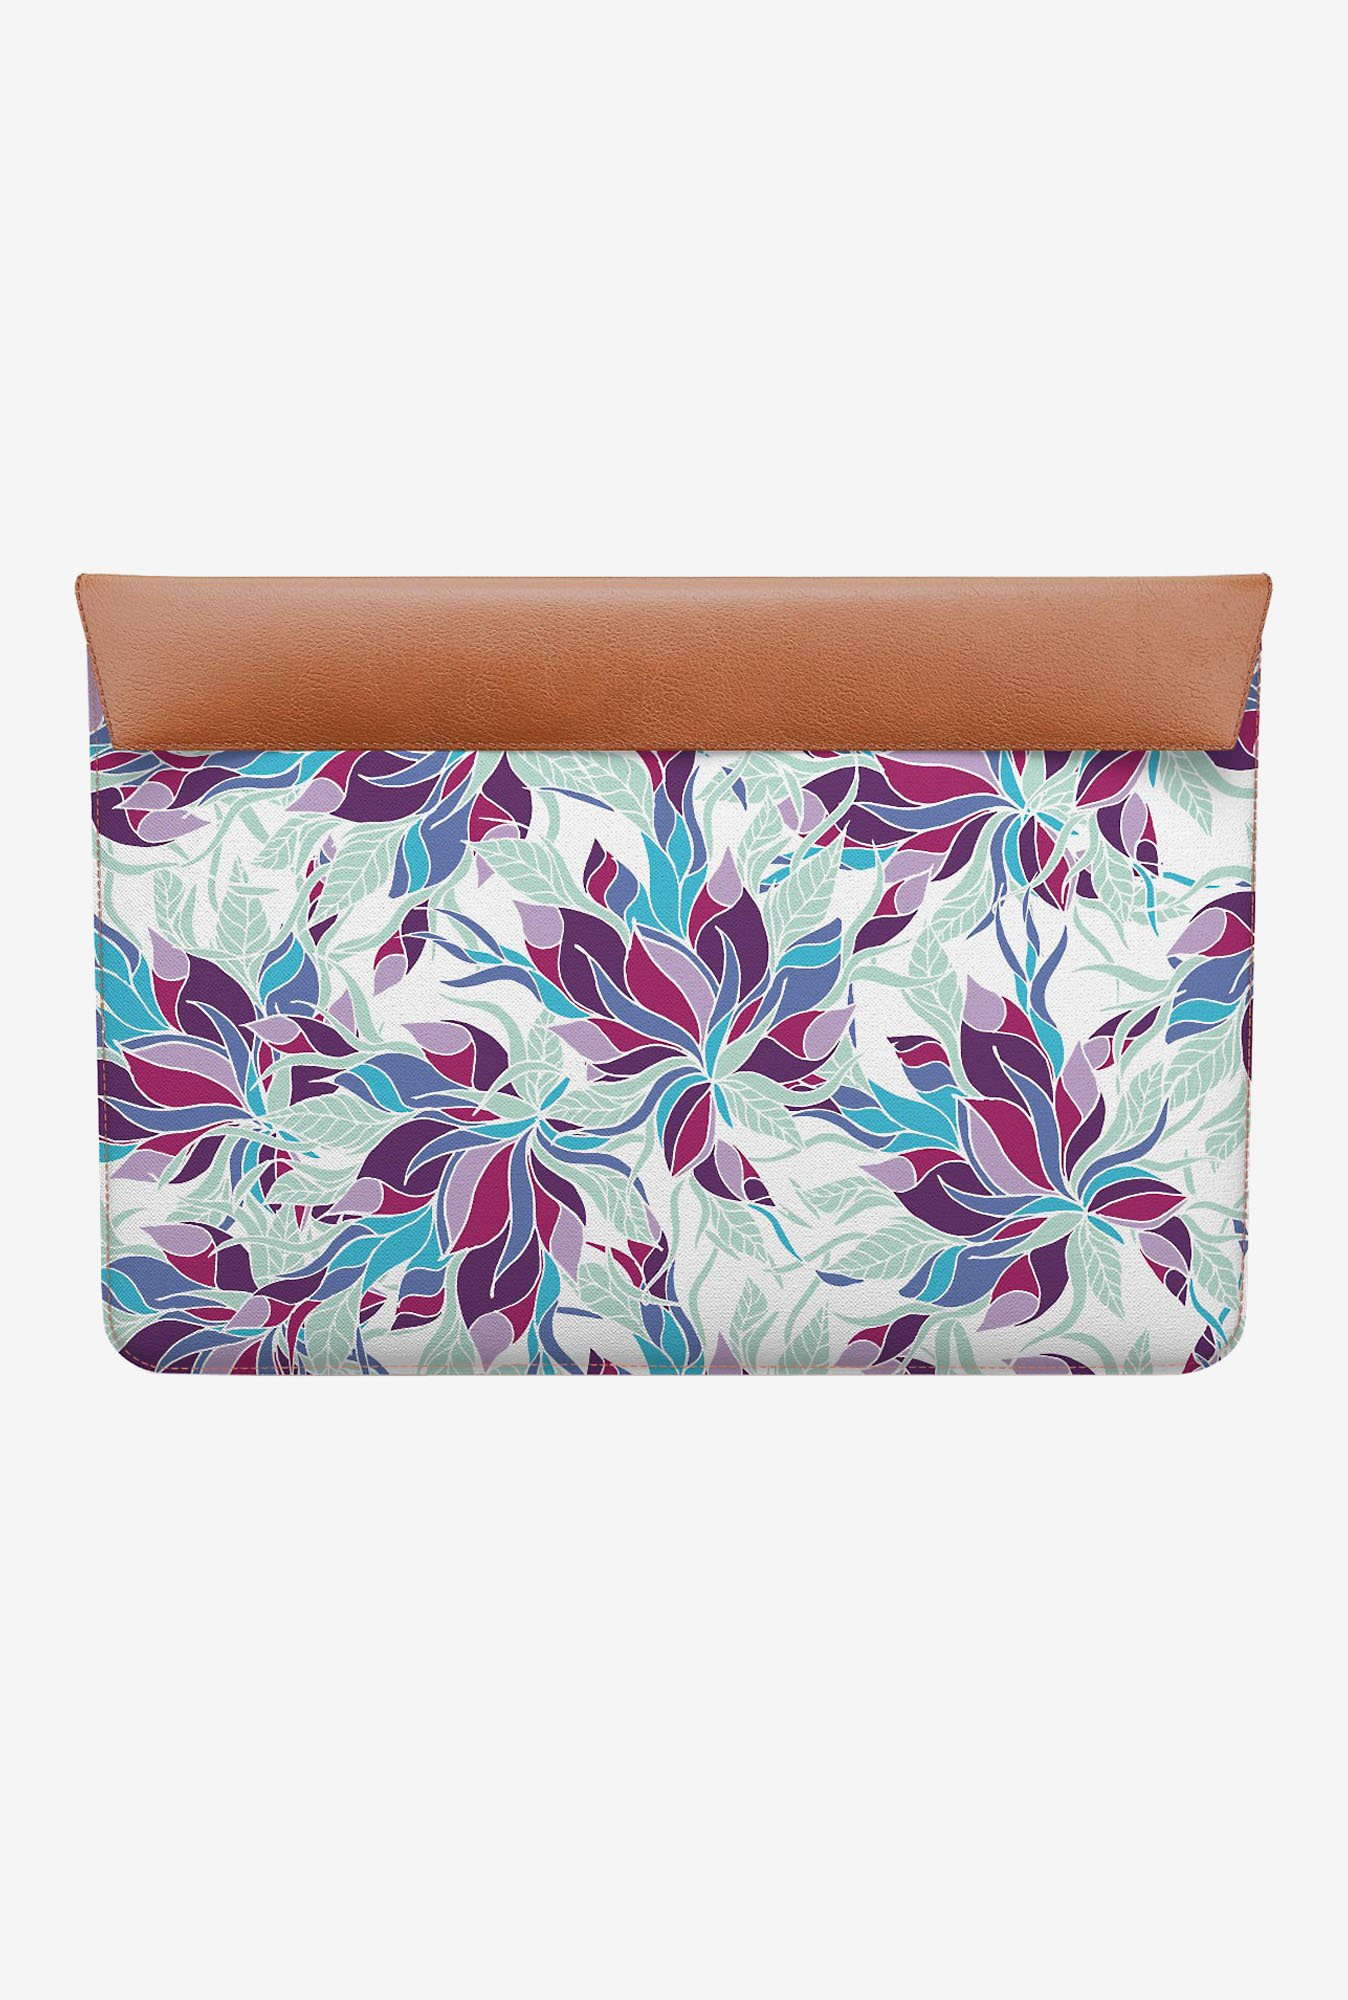 DailyObjects Fall Floral MacBook 12 Envelope Sleeve